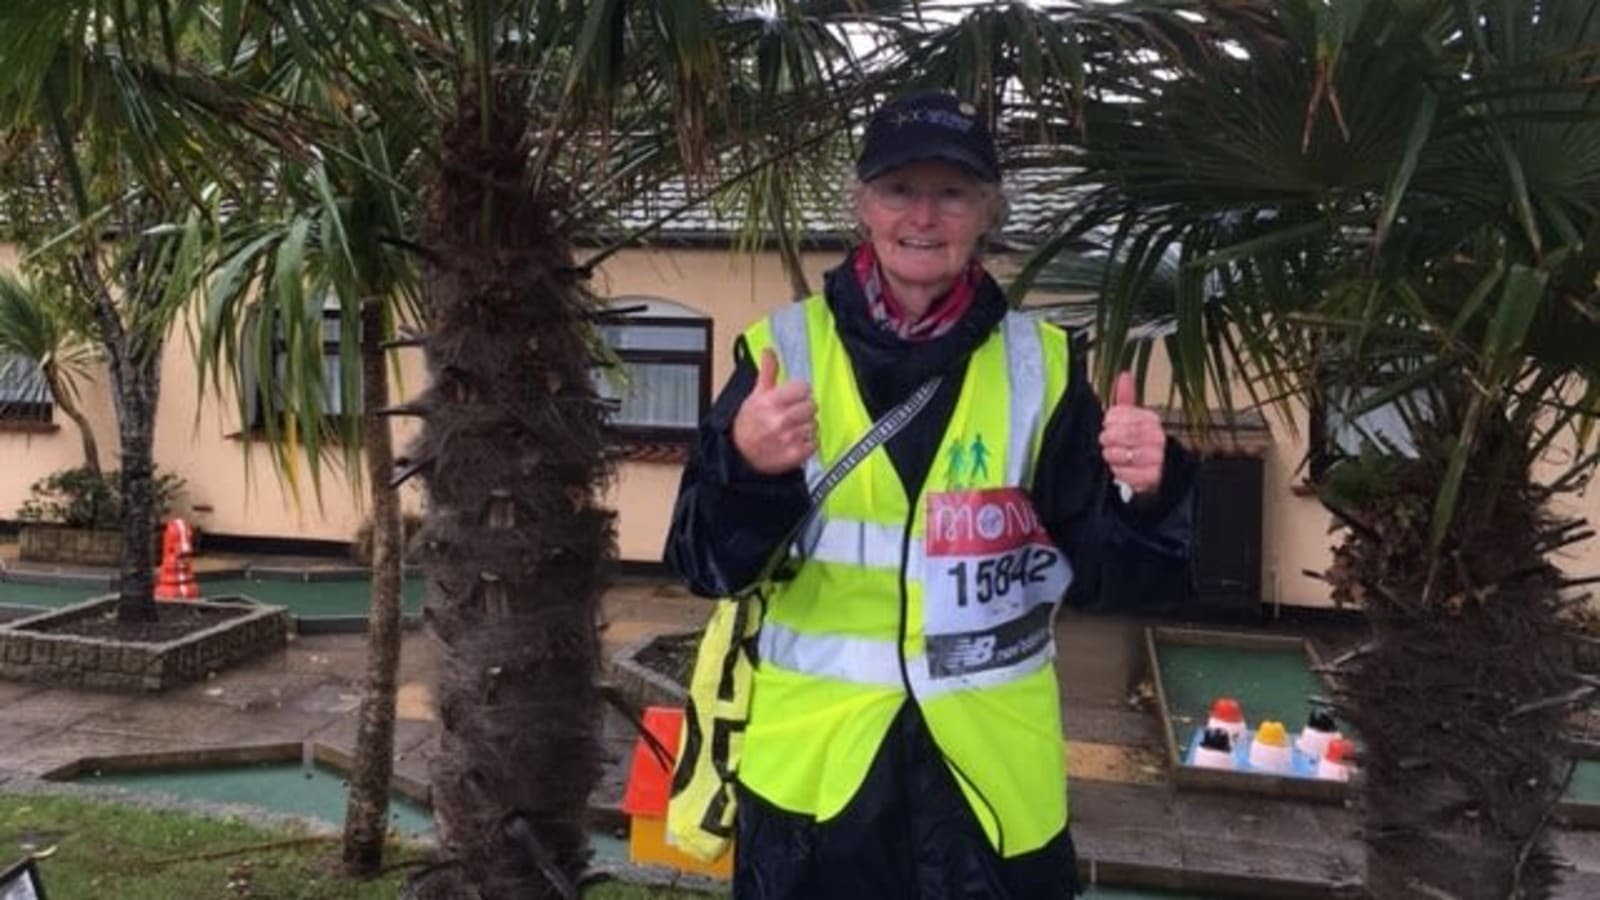 Westbank colleague walks the extra mile for Dementia